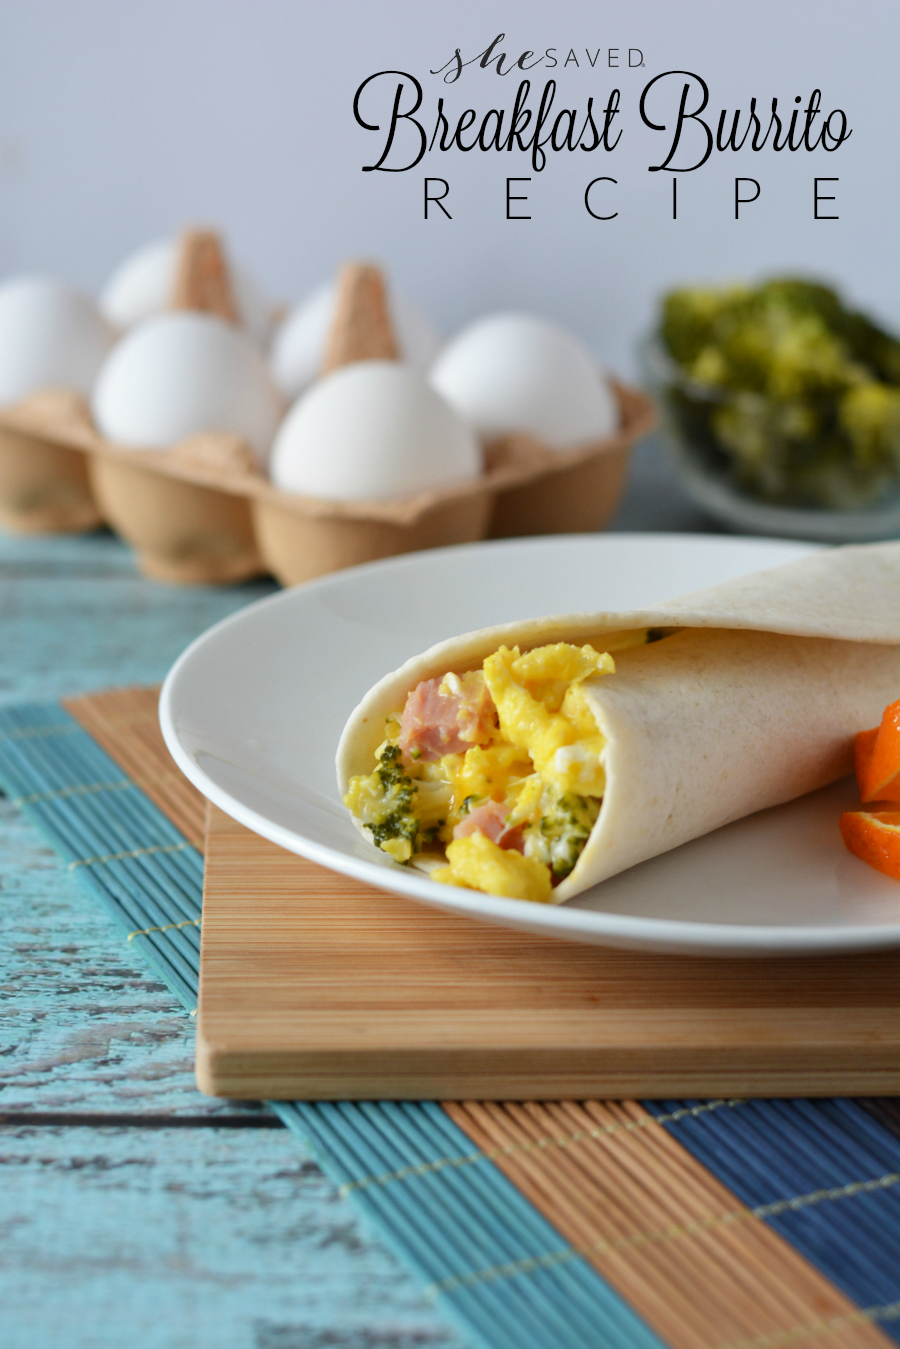 This easy Breakfast Burrito Recipe is great for kids in sports and breakfast on the go!